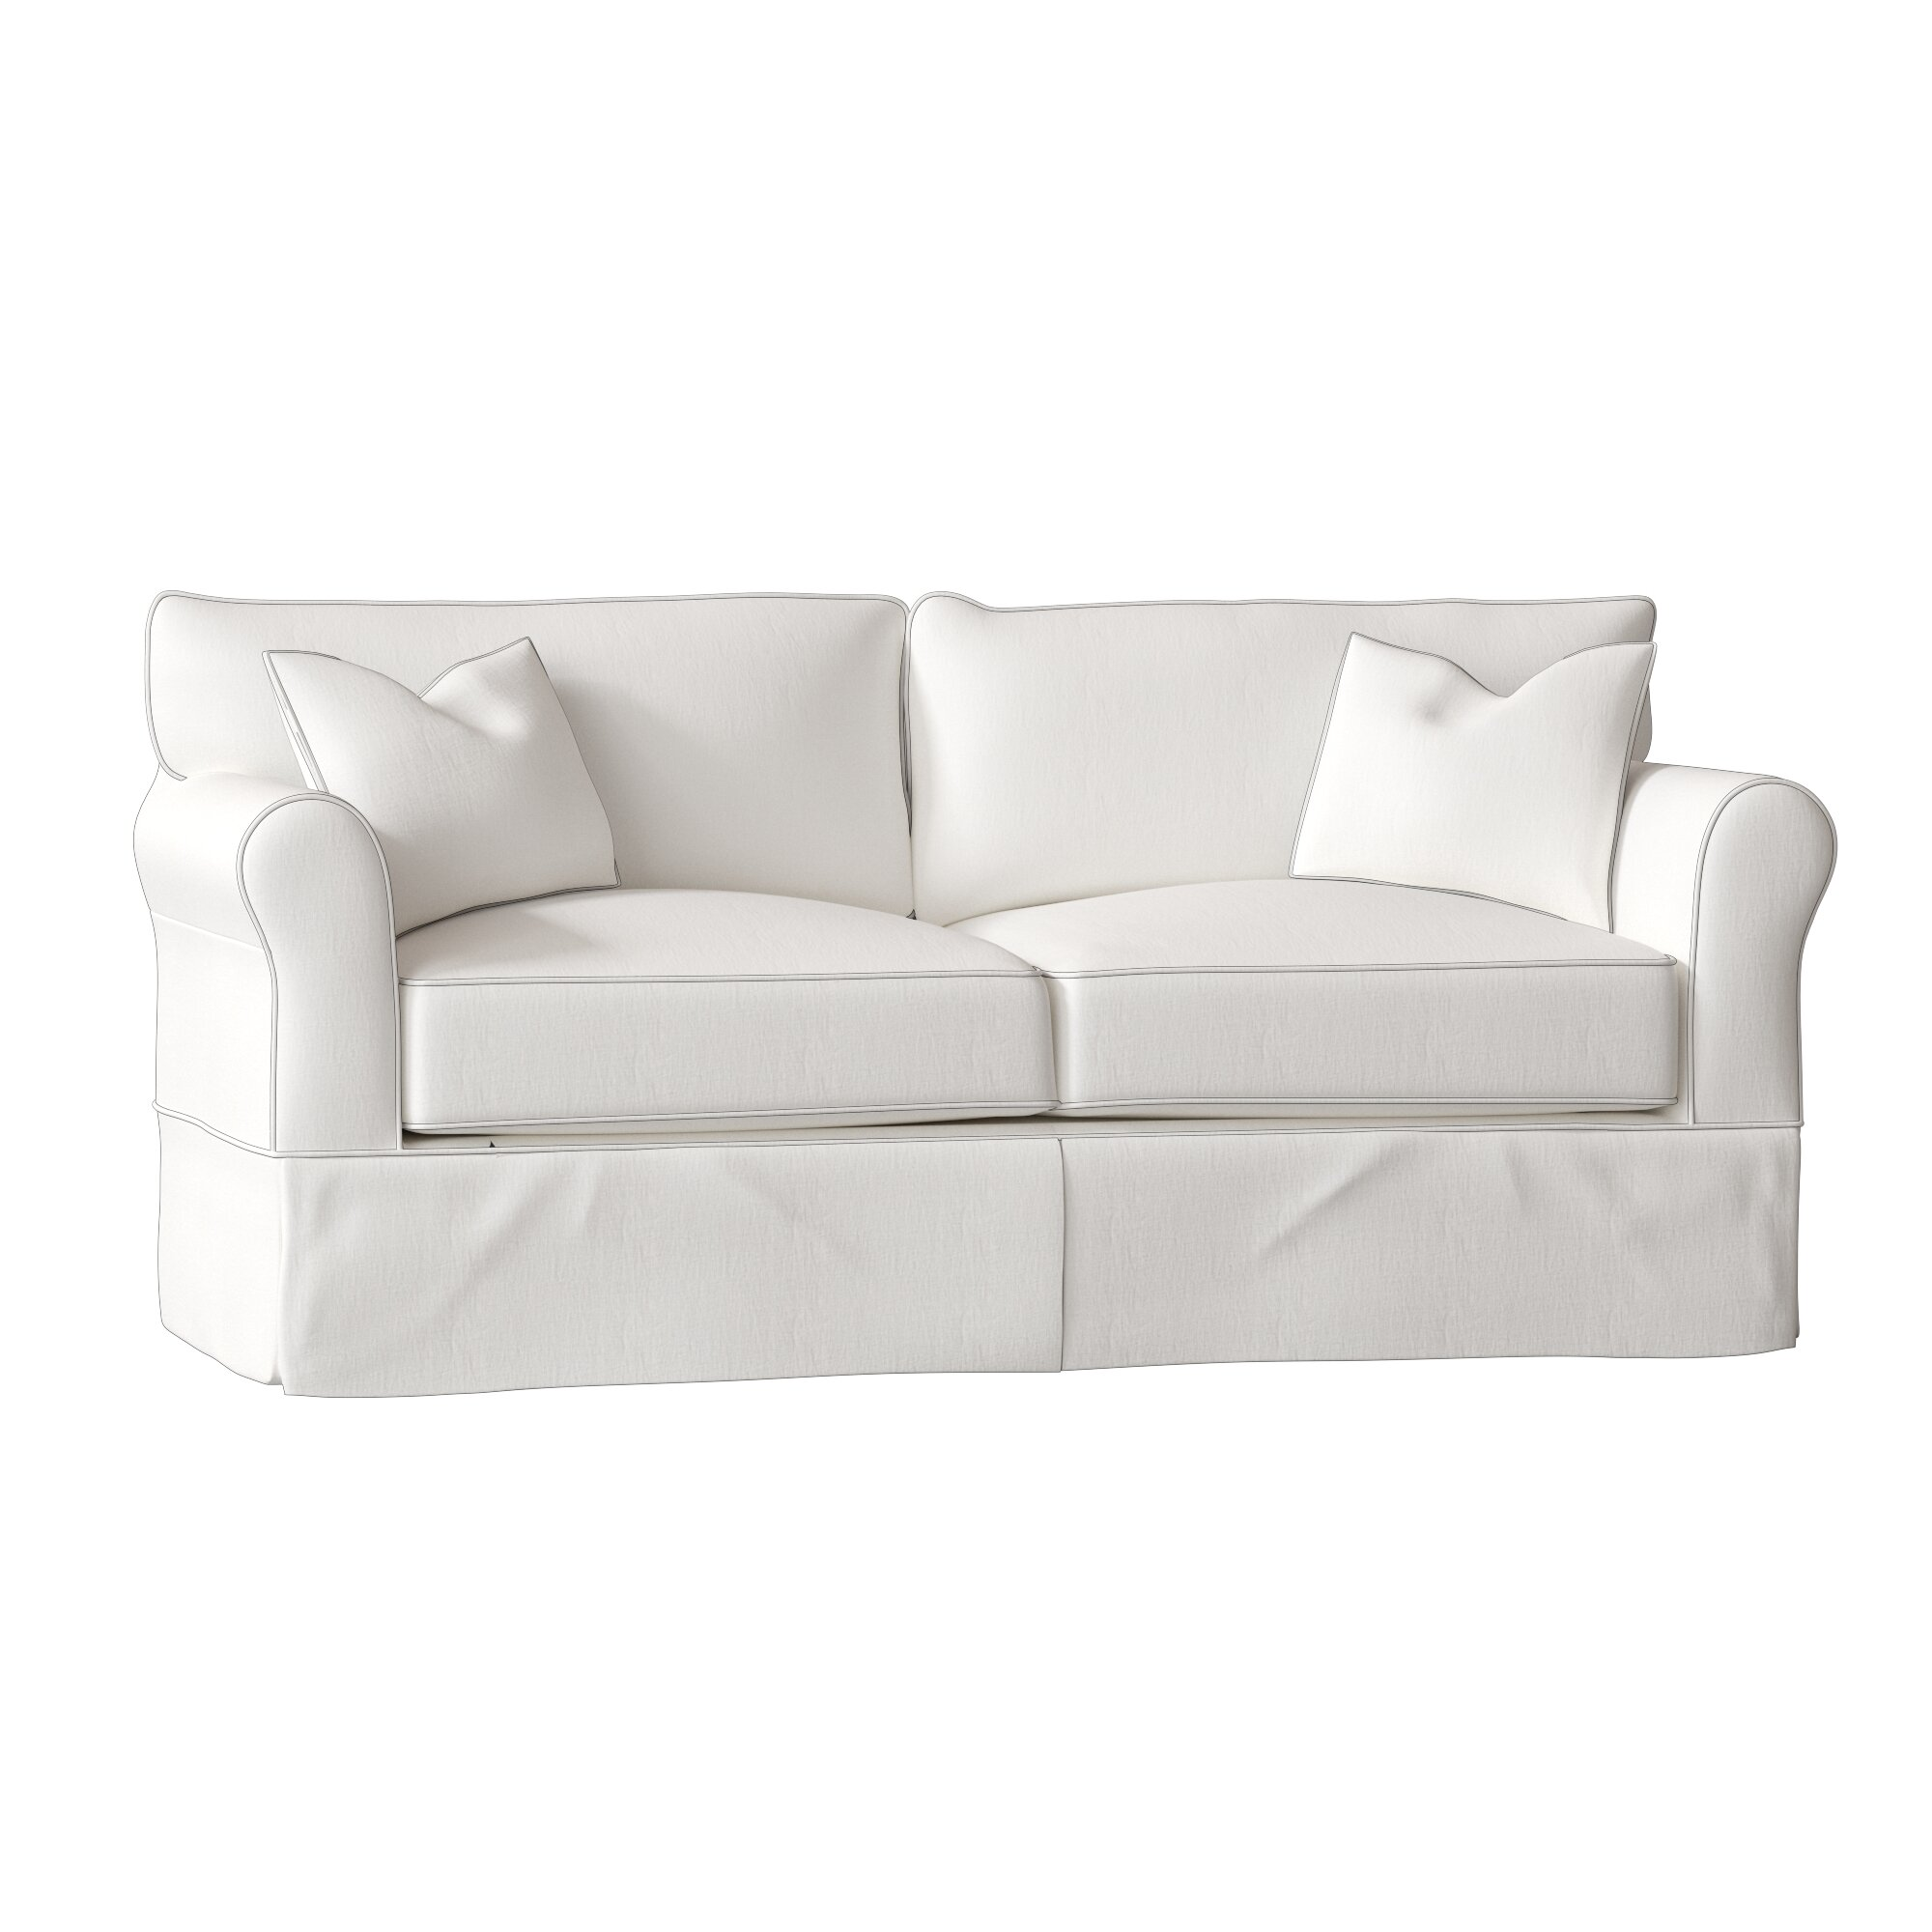 Veana Sleeper Sofa